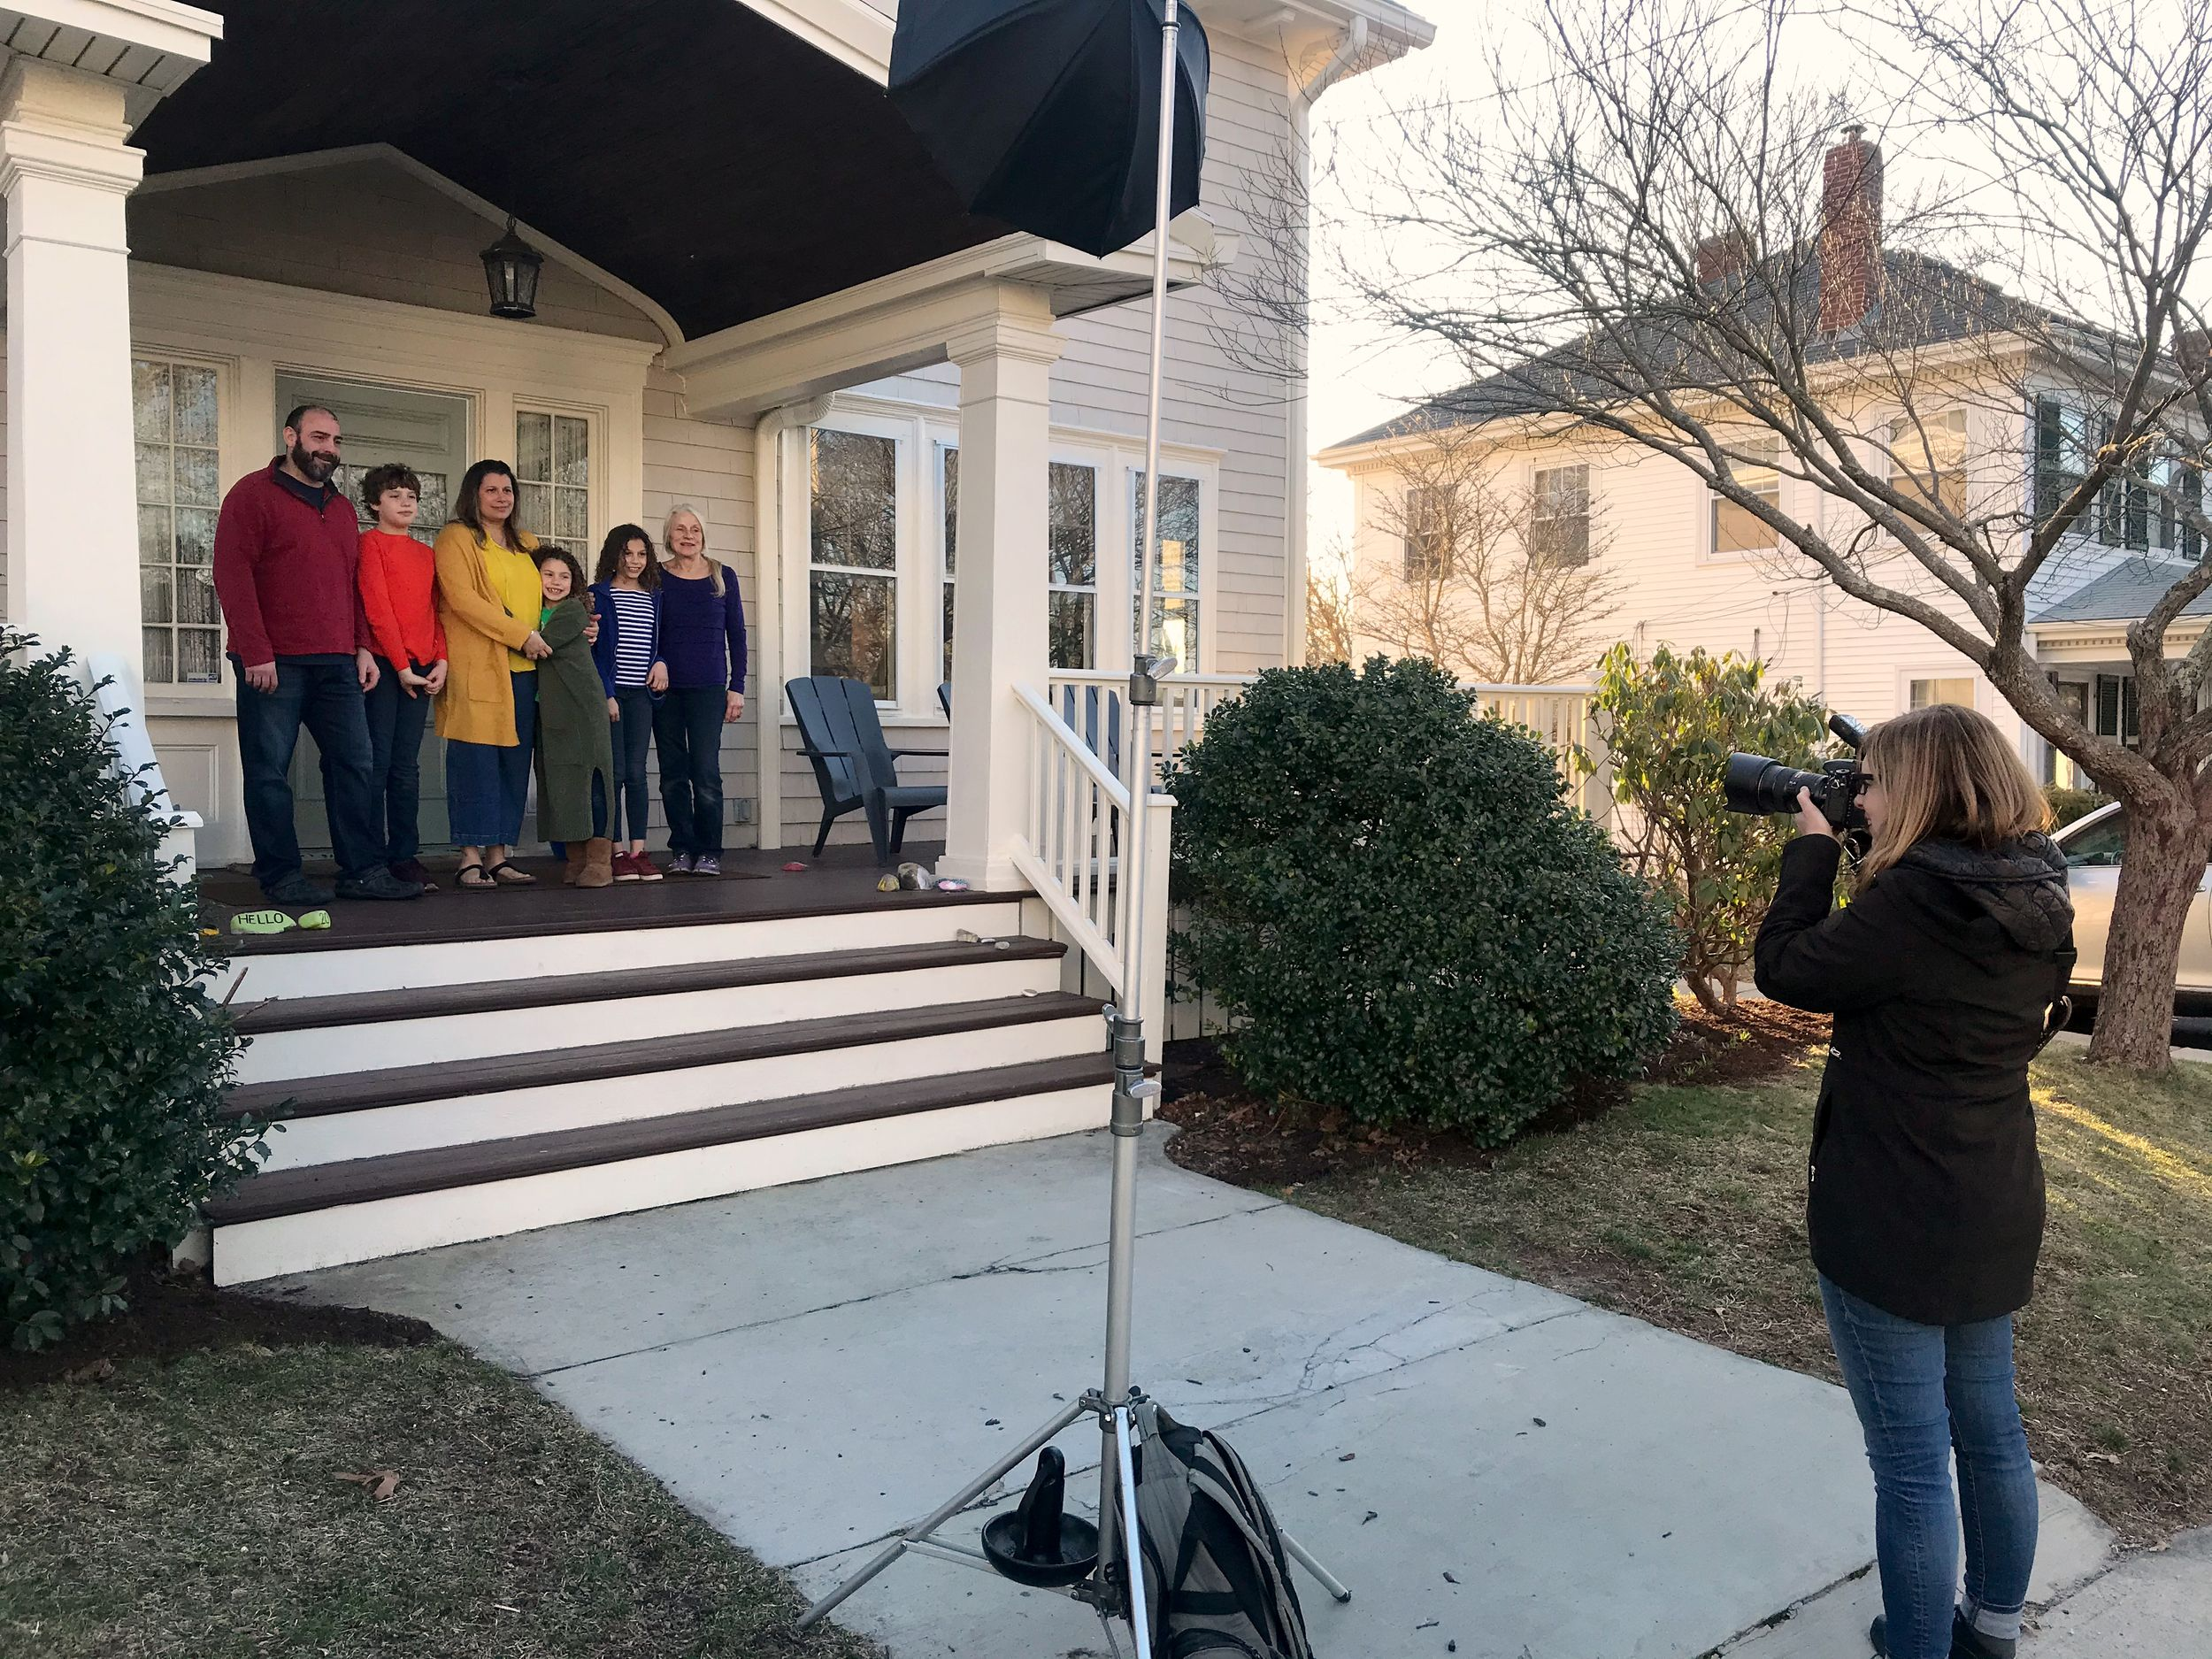 Behind the scenes of a Porch Portrait by heidi harting photography - plymouth, ma